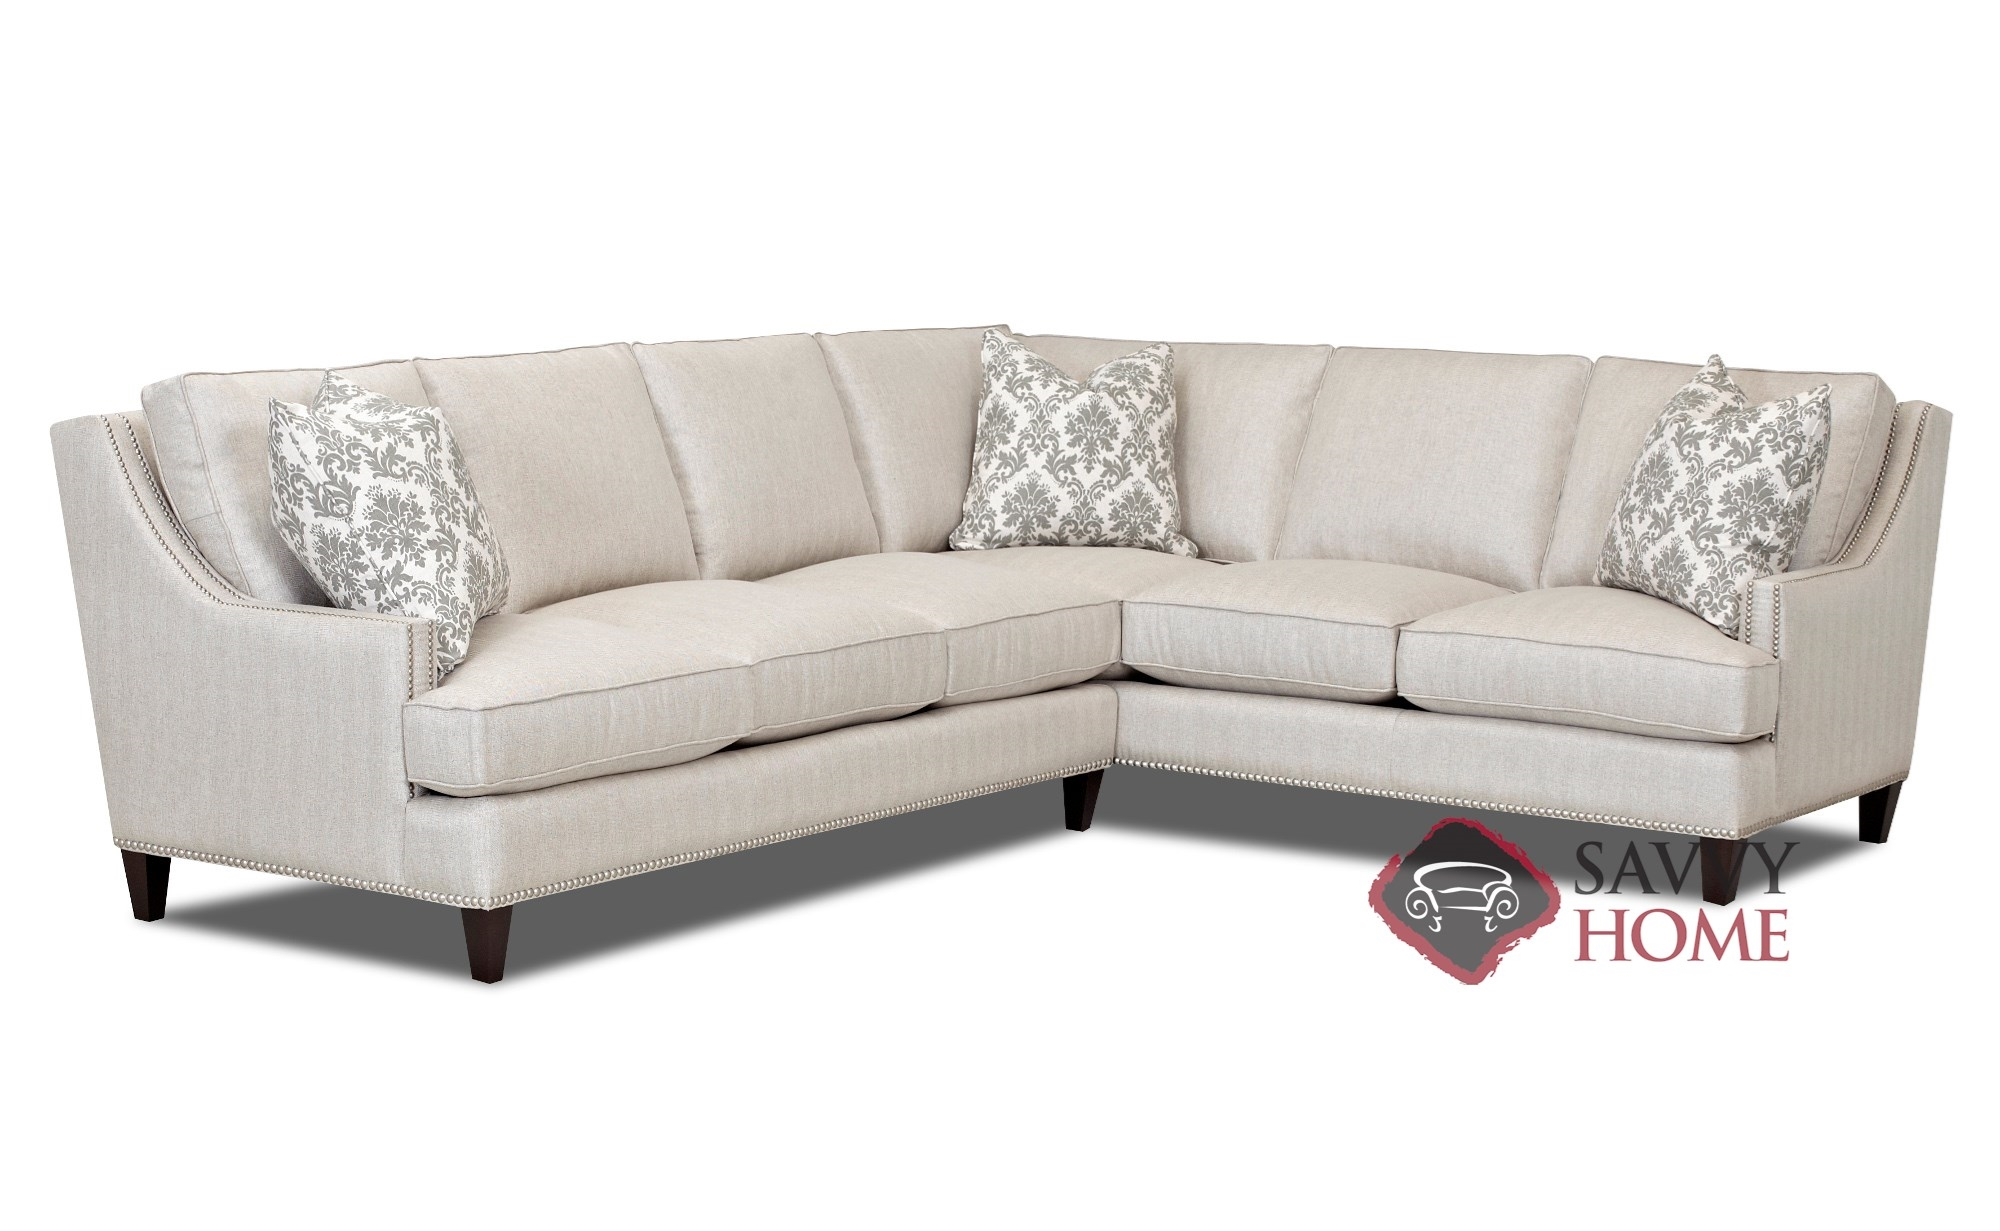 Dallas True Sectional by Savvy